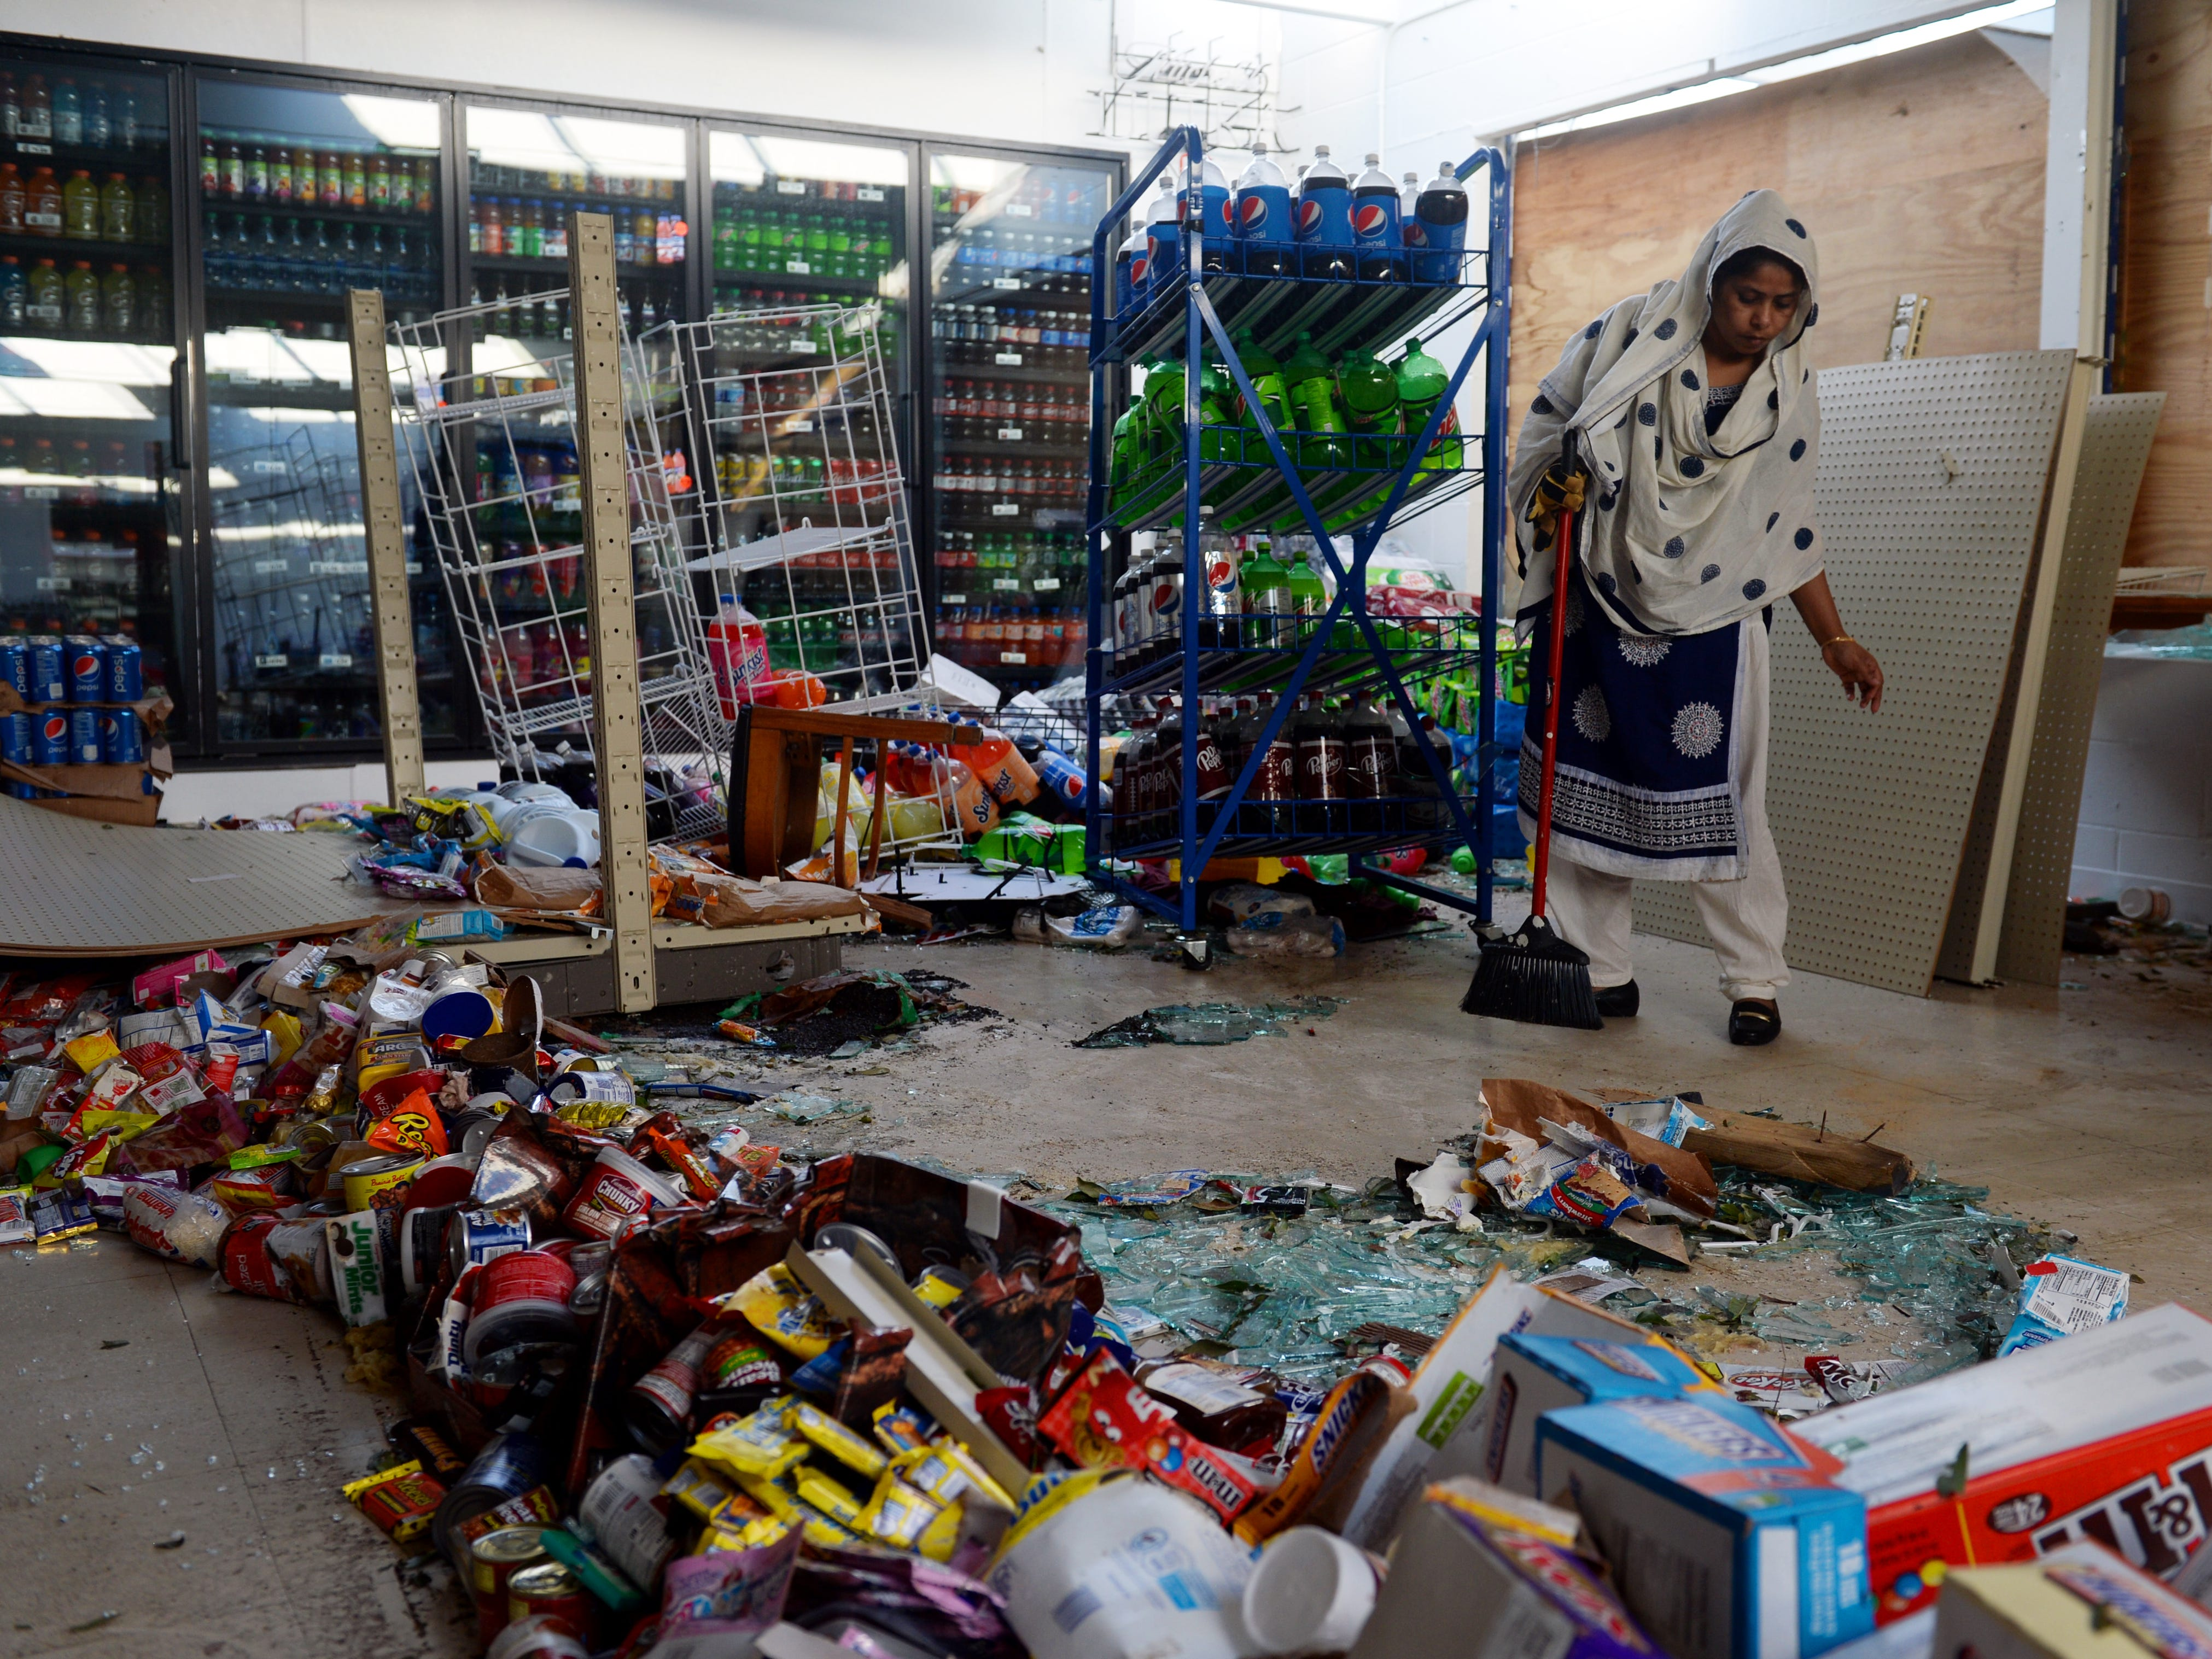 Oct. 12, 2018, Panama City, FL, USA; Khodaza Khatun Popi works to clean spoiled food, broken glass and water from the floor of the Shop N Go Jr. convenience store two days after Hurricane Michael blew through Panama City. Mandatory Credit: Patrick Dove/Treasure Coast News via USA Today NETWORK